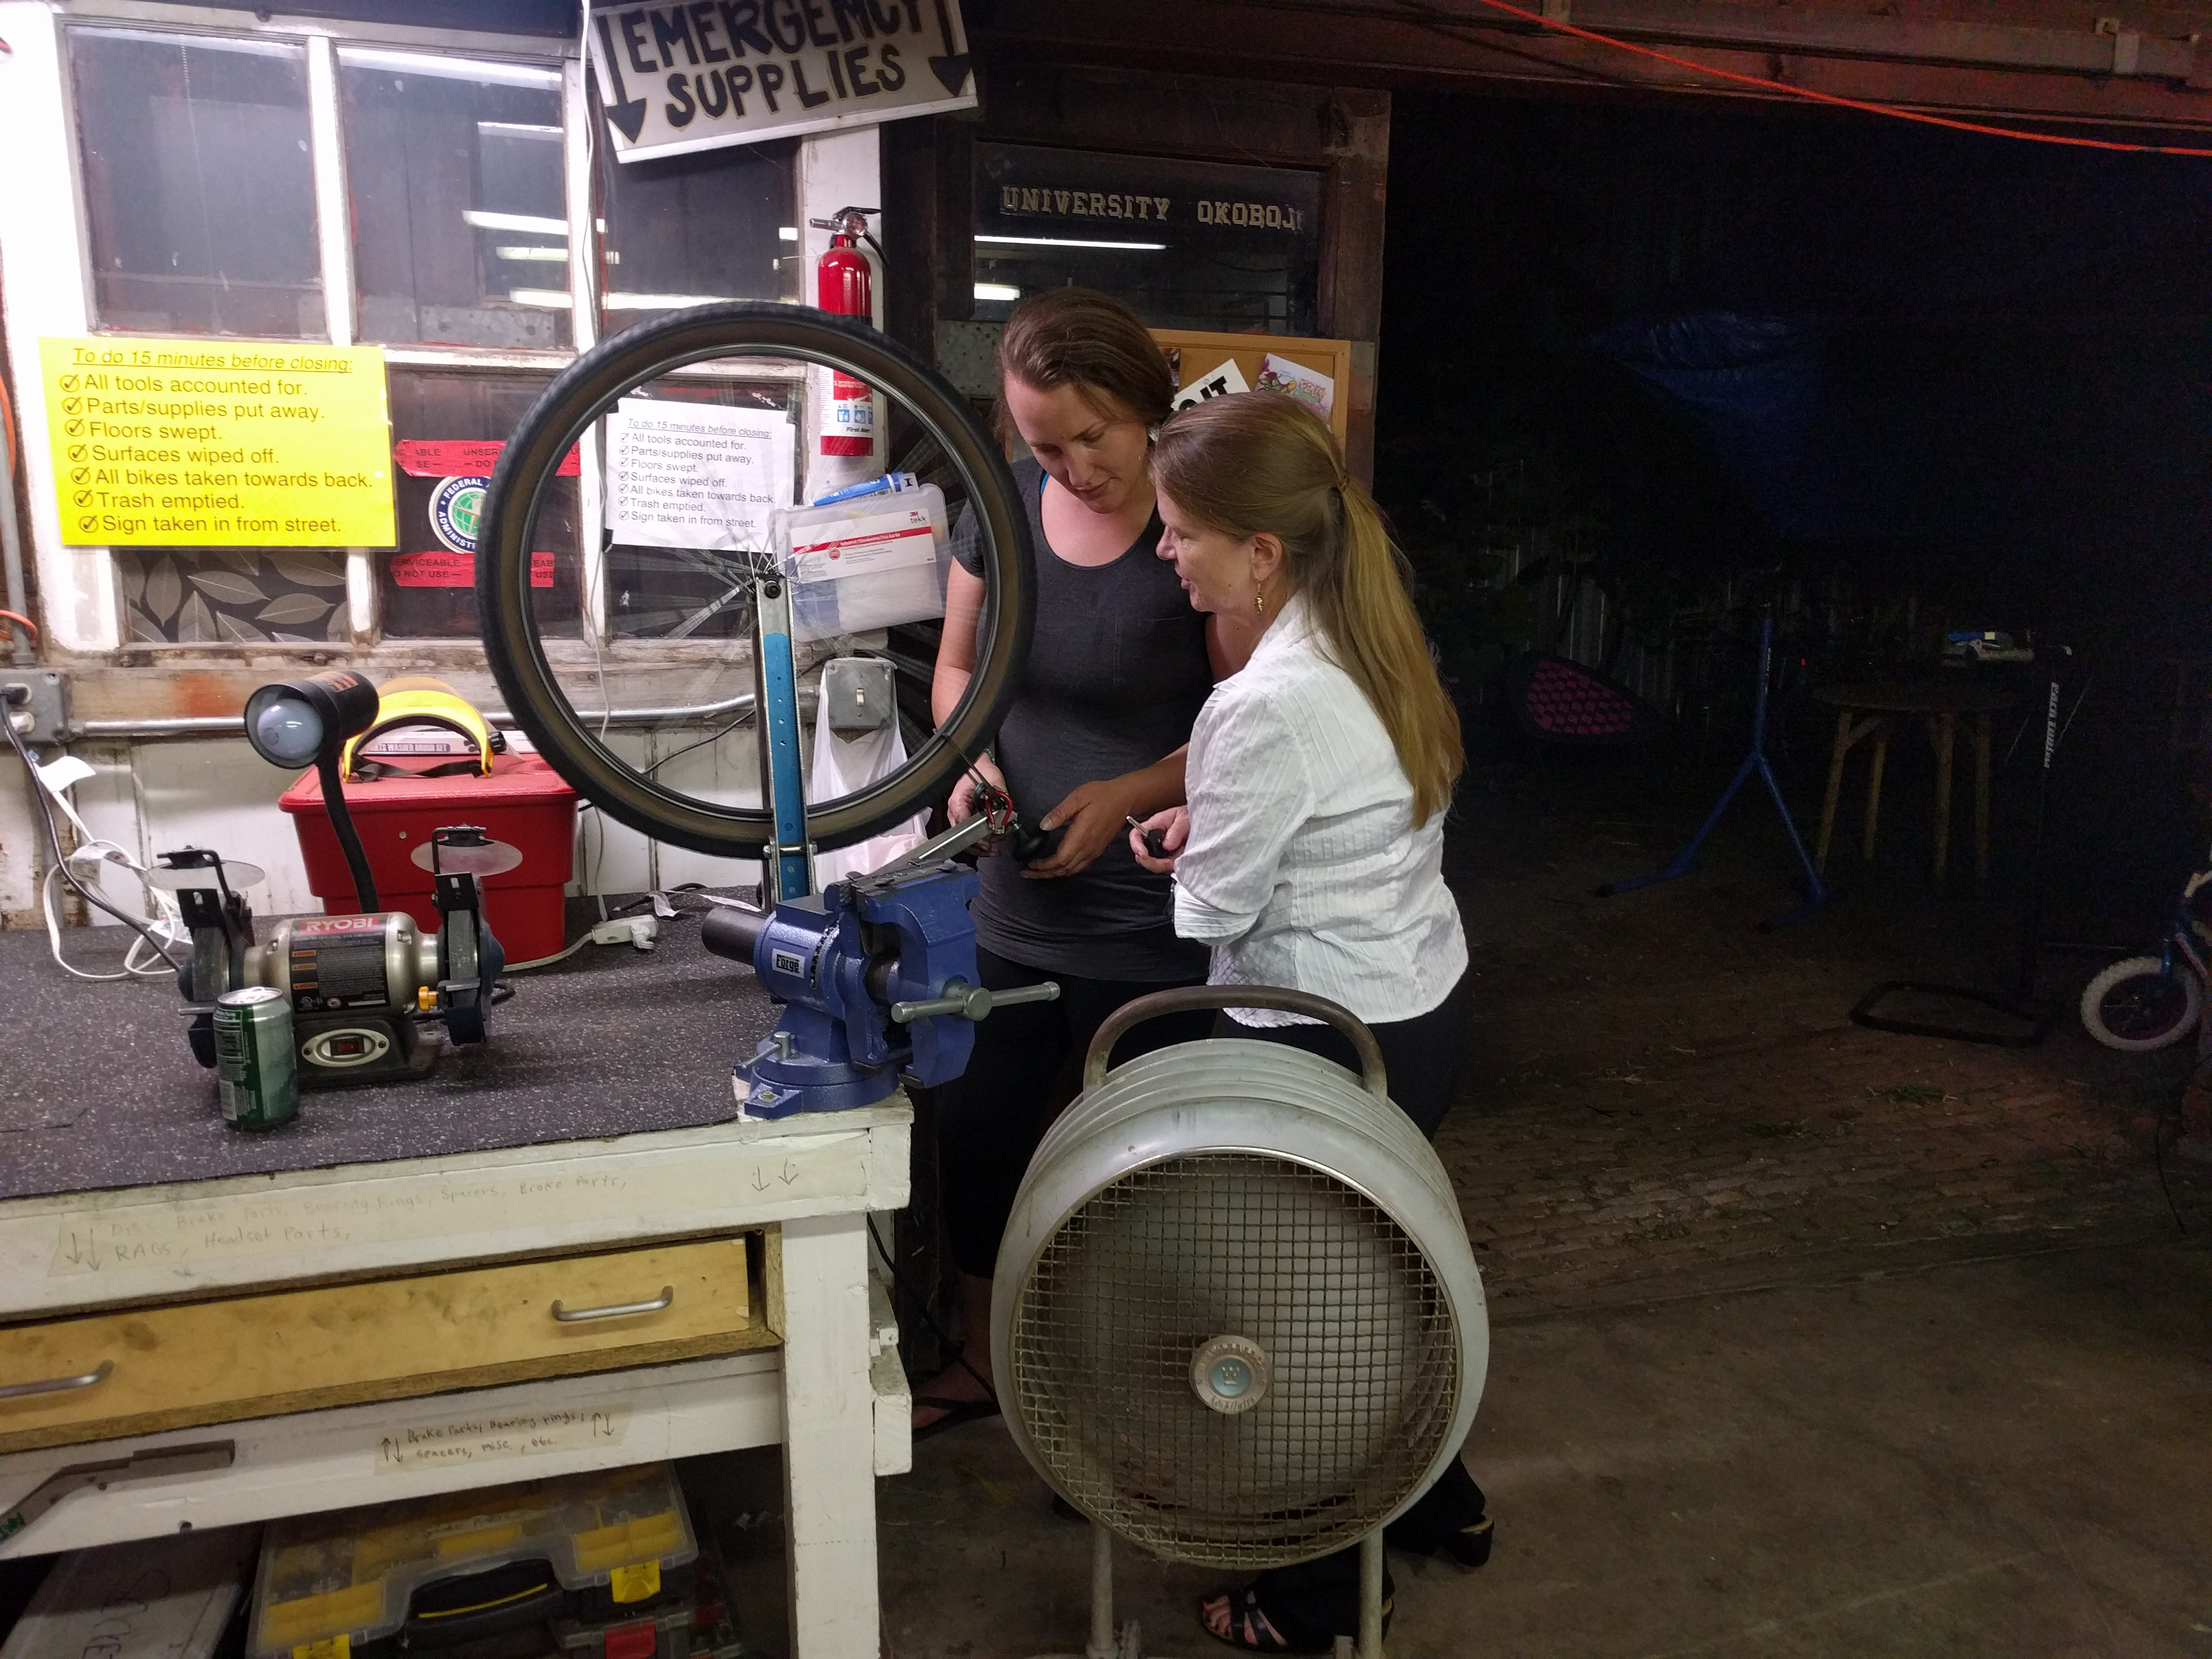 Desiree Kuhn, discussing truing wheels with Jane Halliday